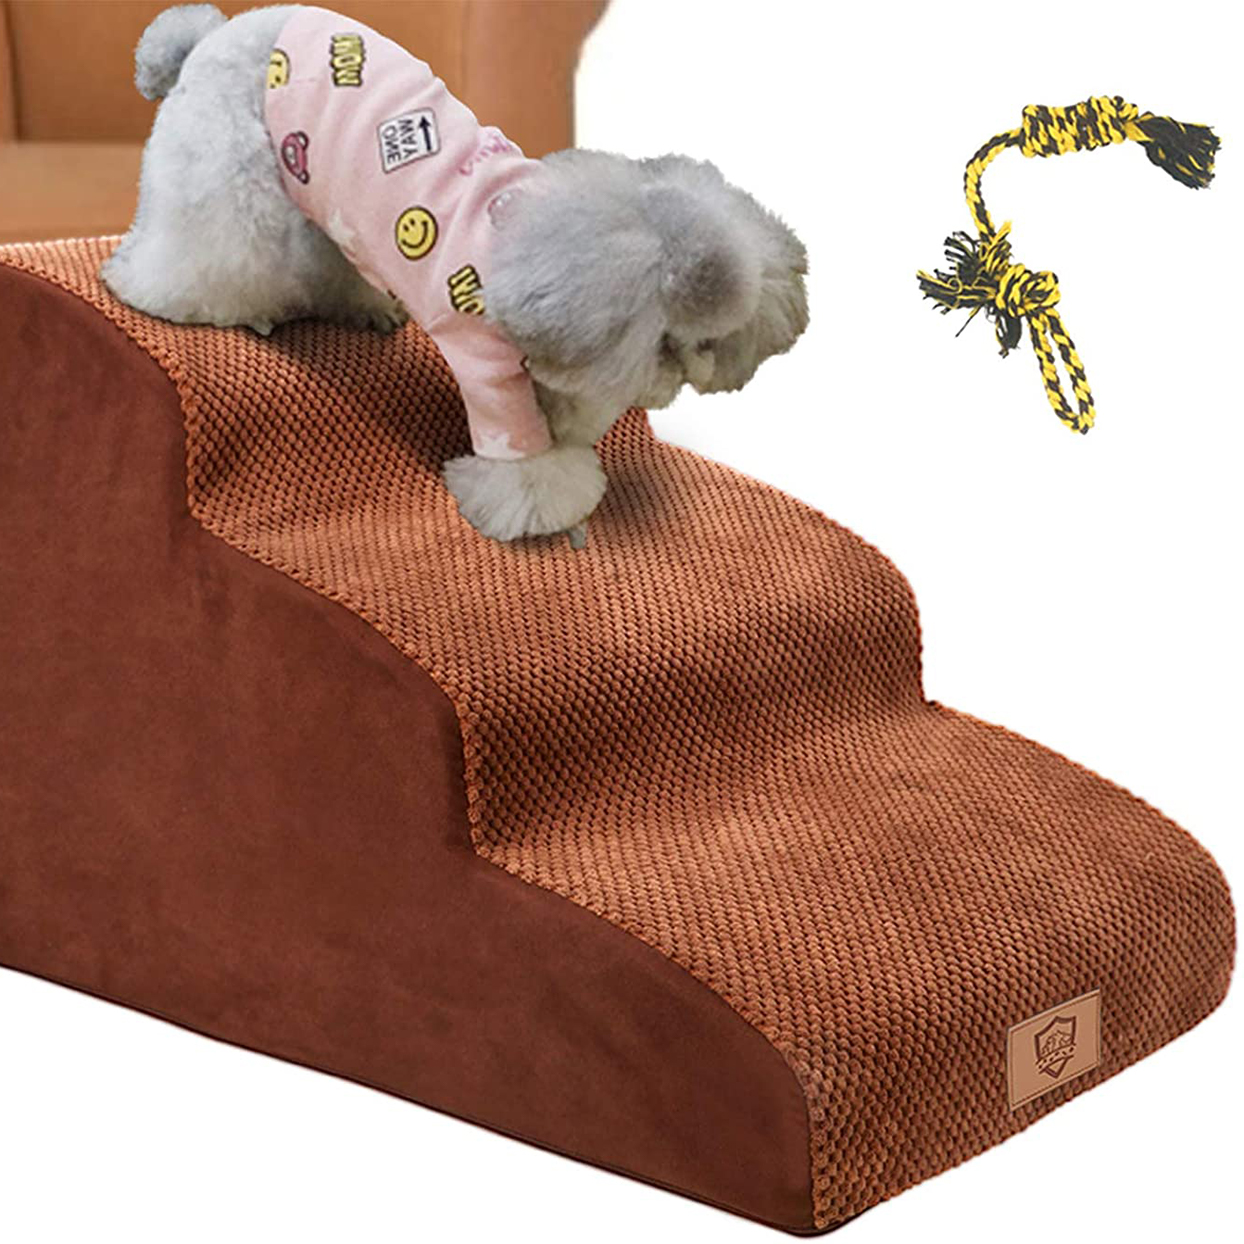 Photo of a dog walking down from a sofa on Topmart 3 Tiers Foam Dog Ramps/Steps